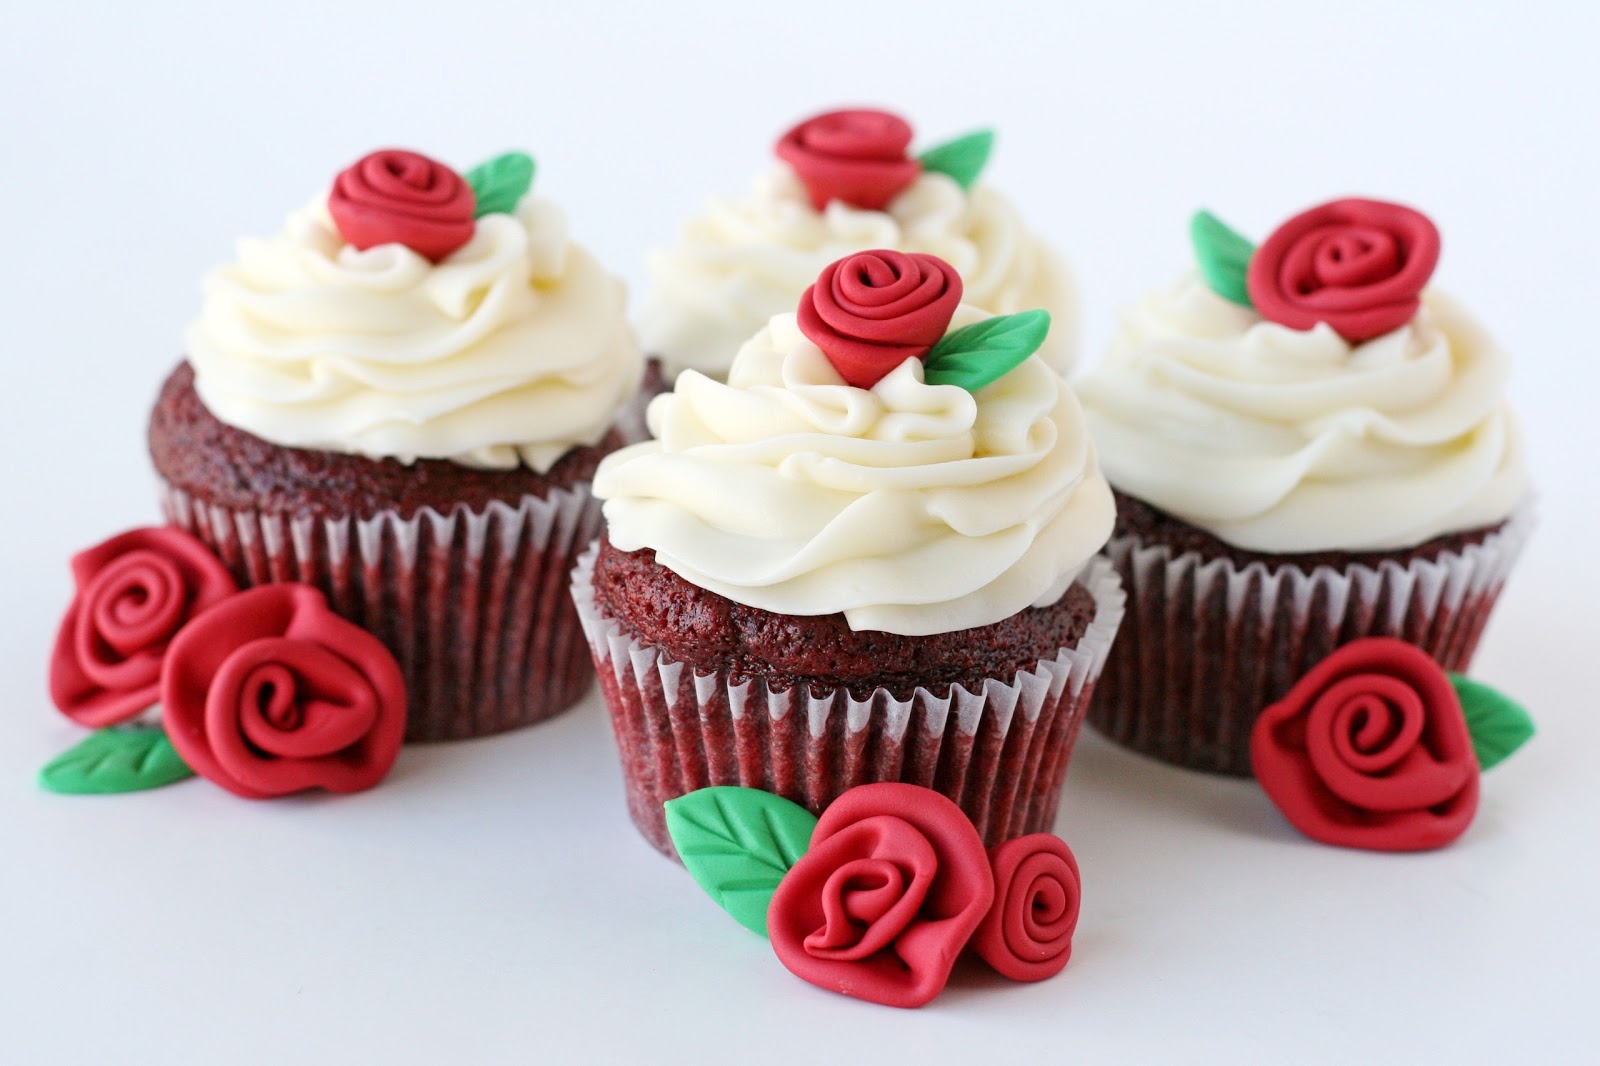 Glorious Treats: Red Velvet Cupcakes with Roses {Recipe}